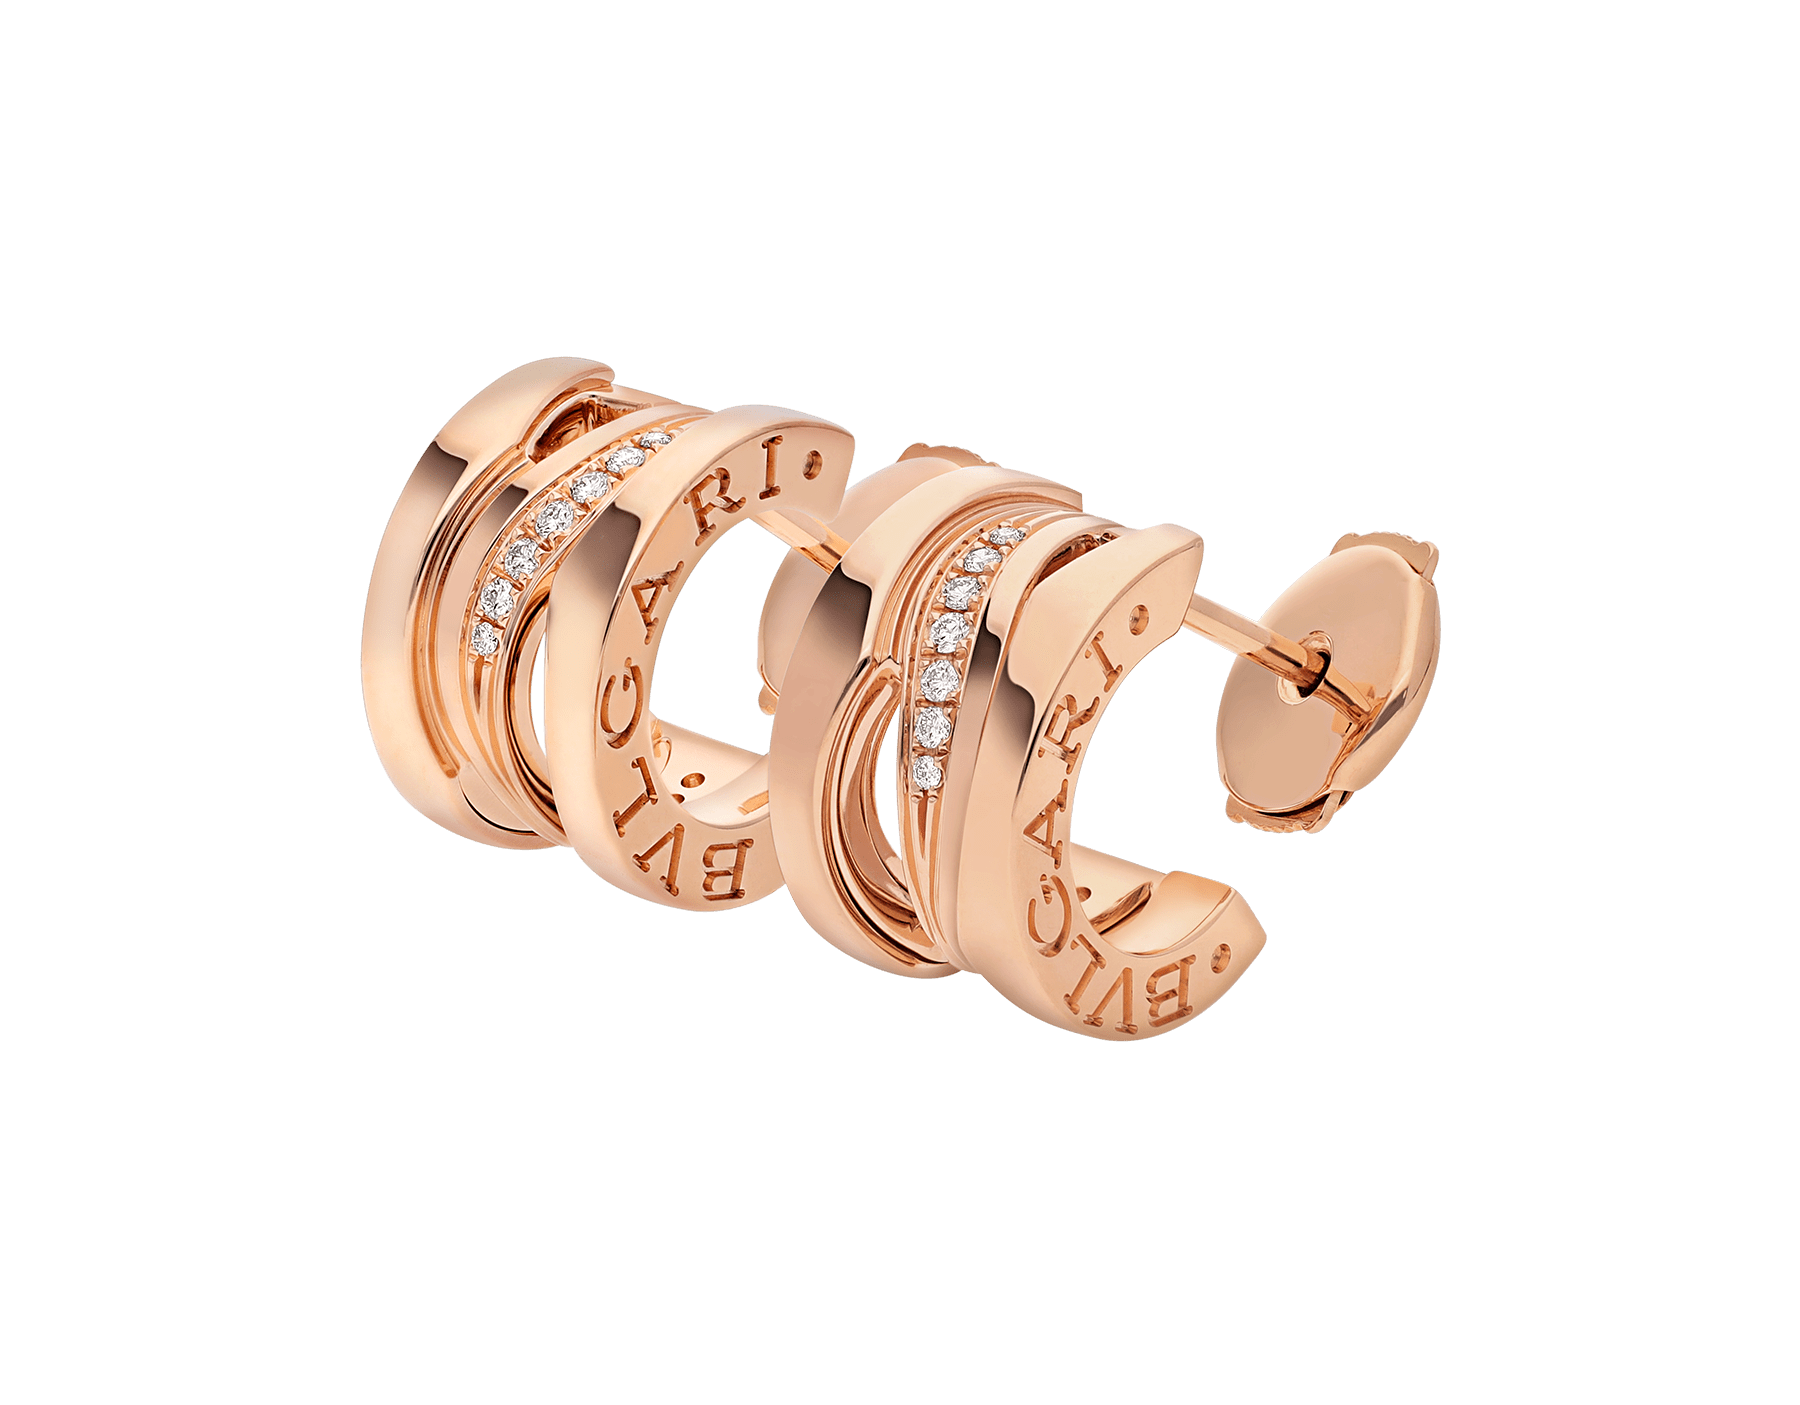 B.zero1 Design Legend 18 kt rose gold earrings set with pavé diamonds on the spiral. 356131 image 2